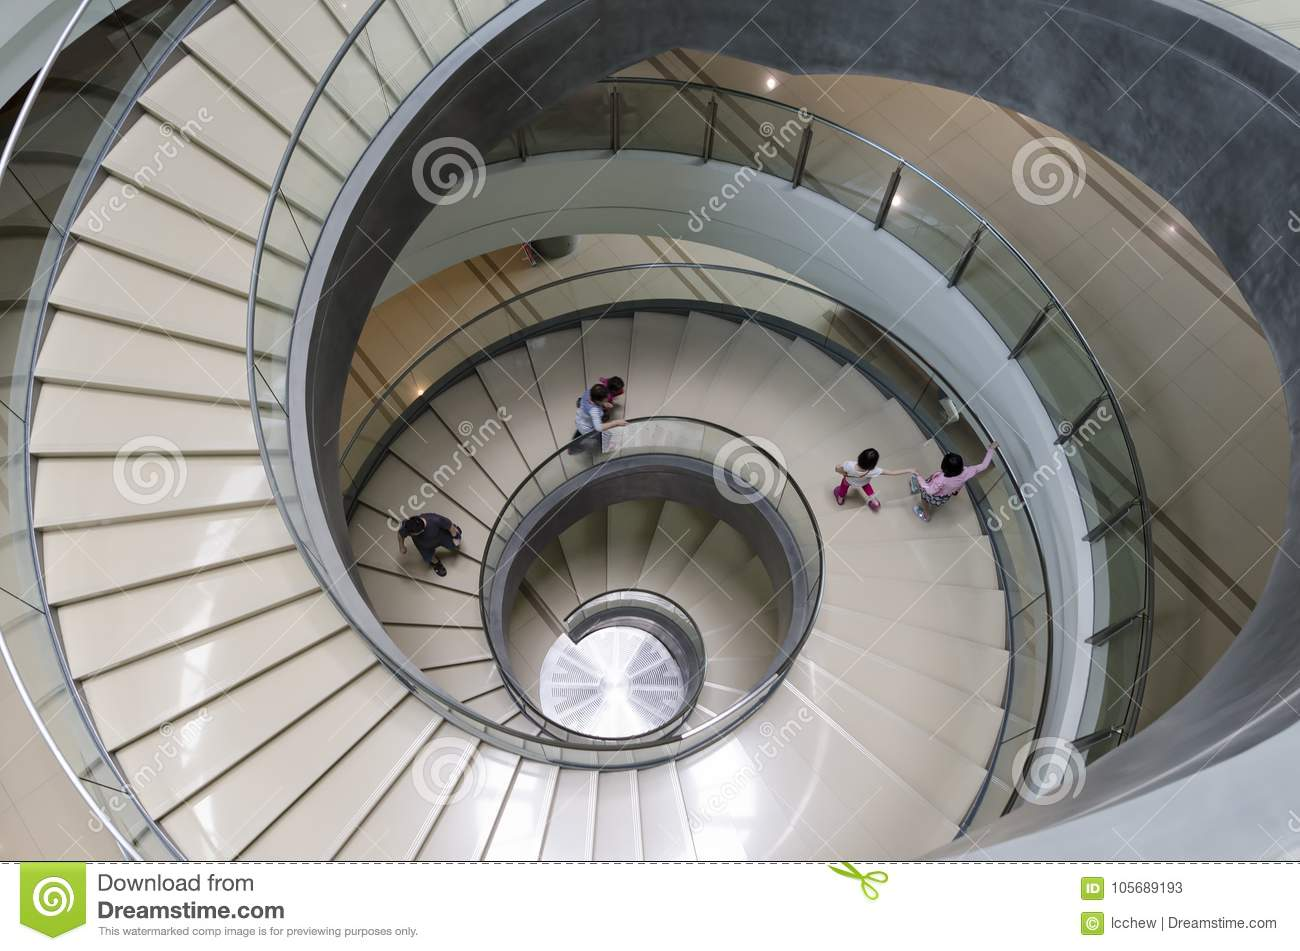 Unidentified Pedestrians Walking On Unique Modern Spiral Staircase